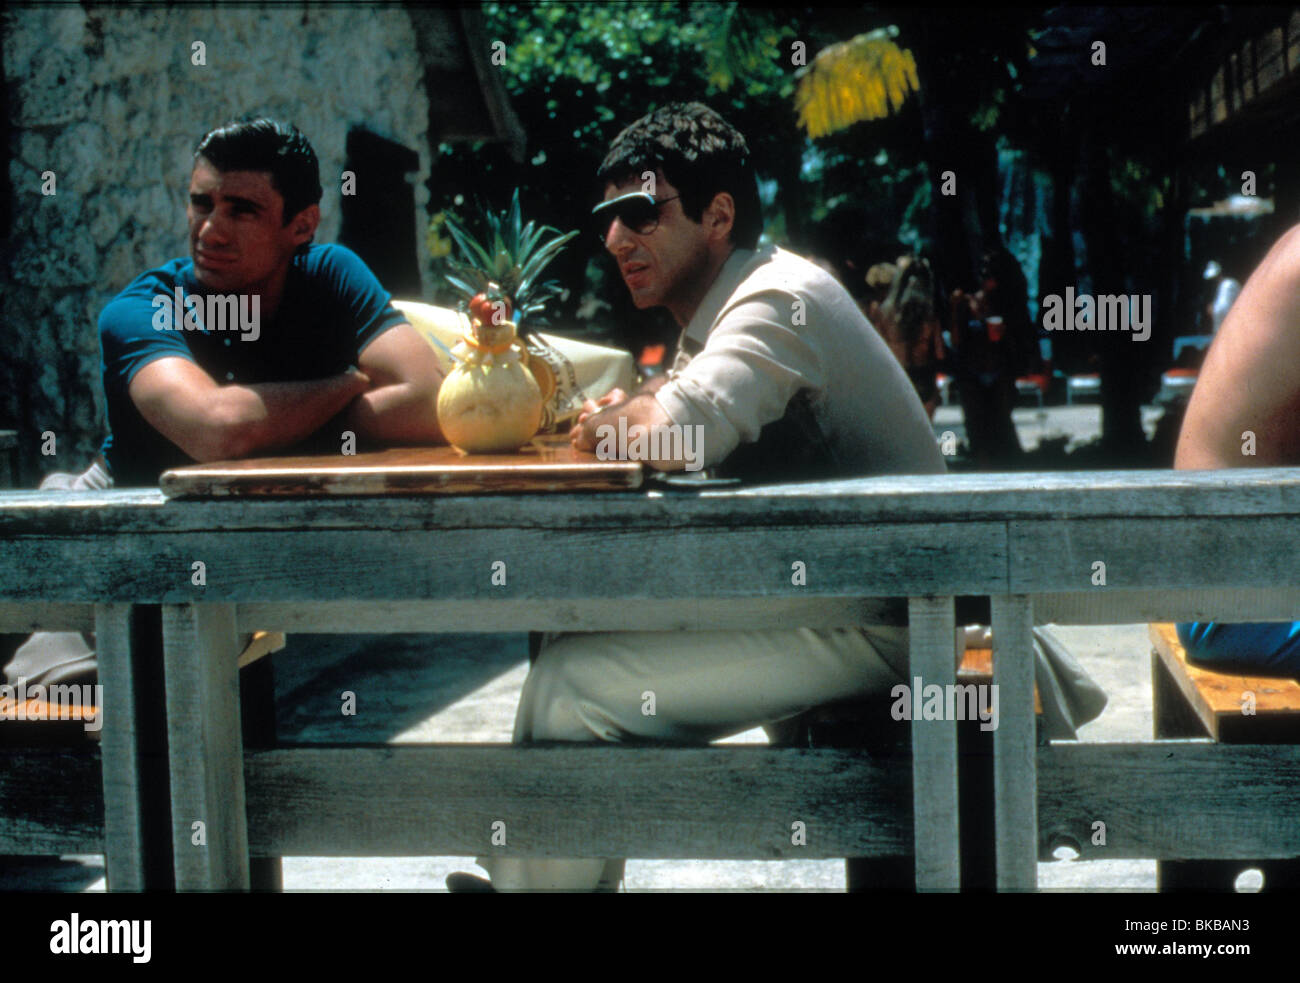 SCARFACE (1983) STEVEN BAUER, AL PACINO SCR 075 - Stock Image